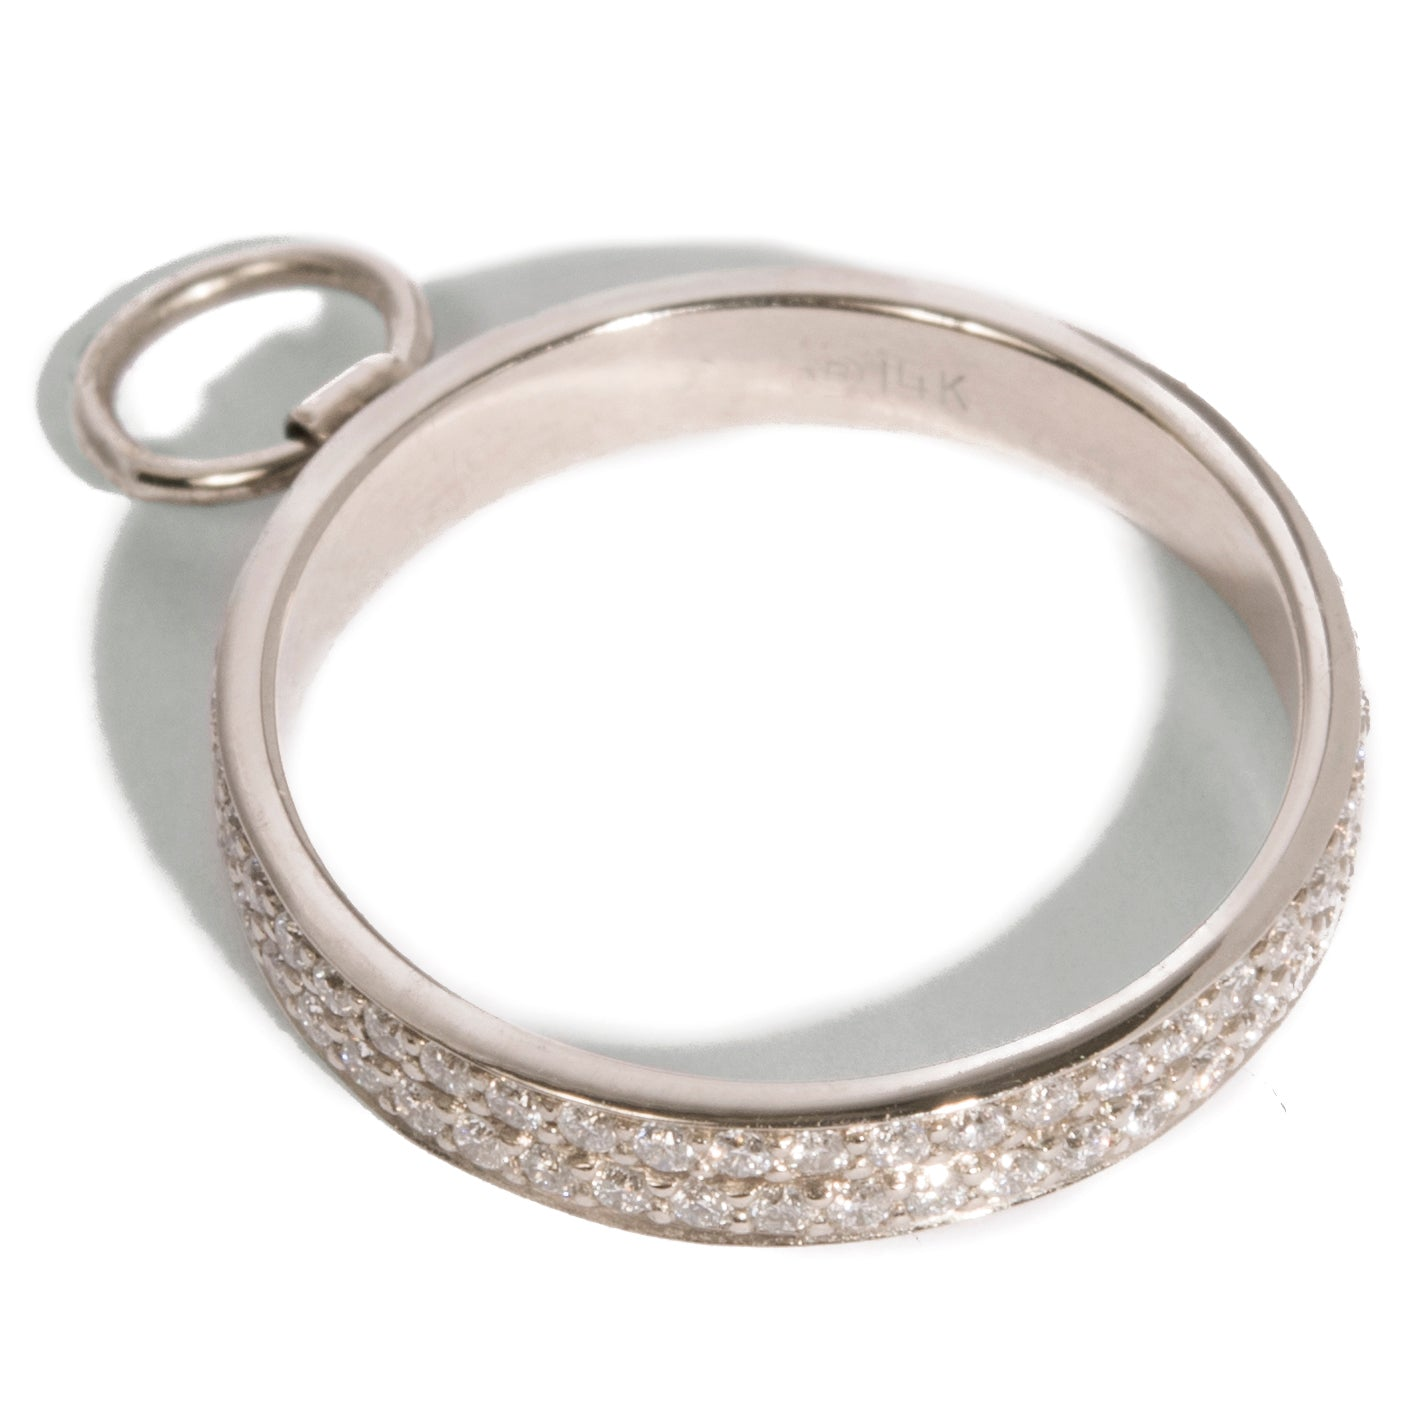 3mm Bondage Ring w. Double Micro Pave Bands